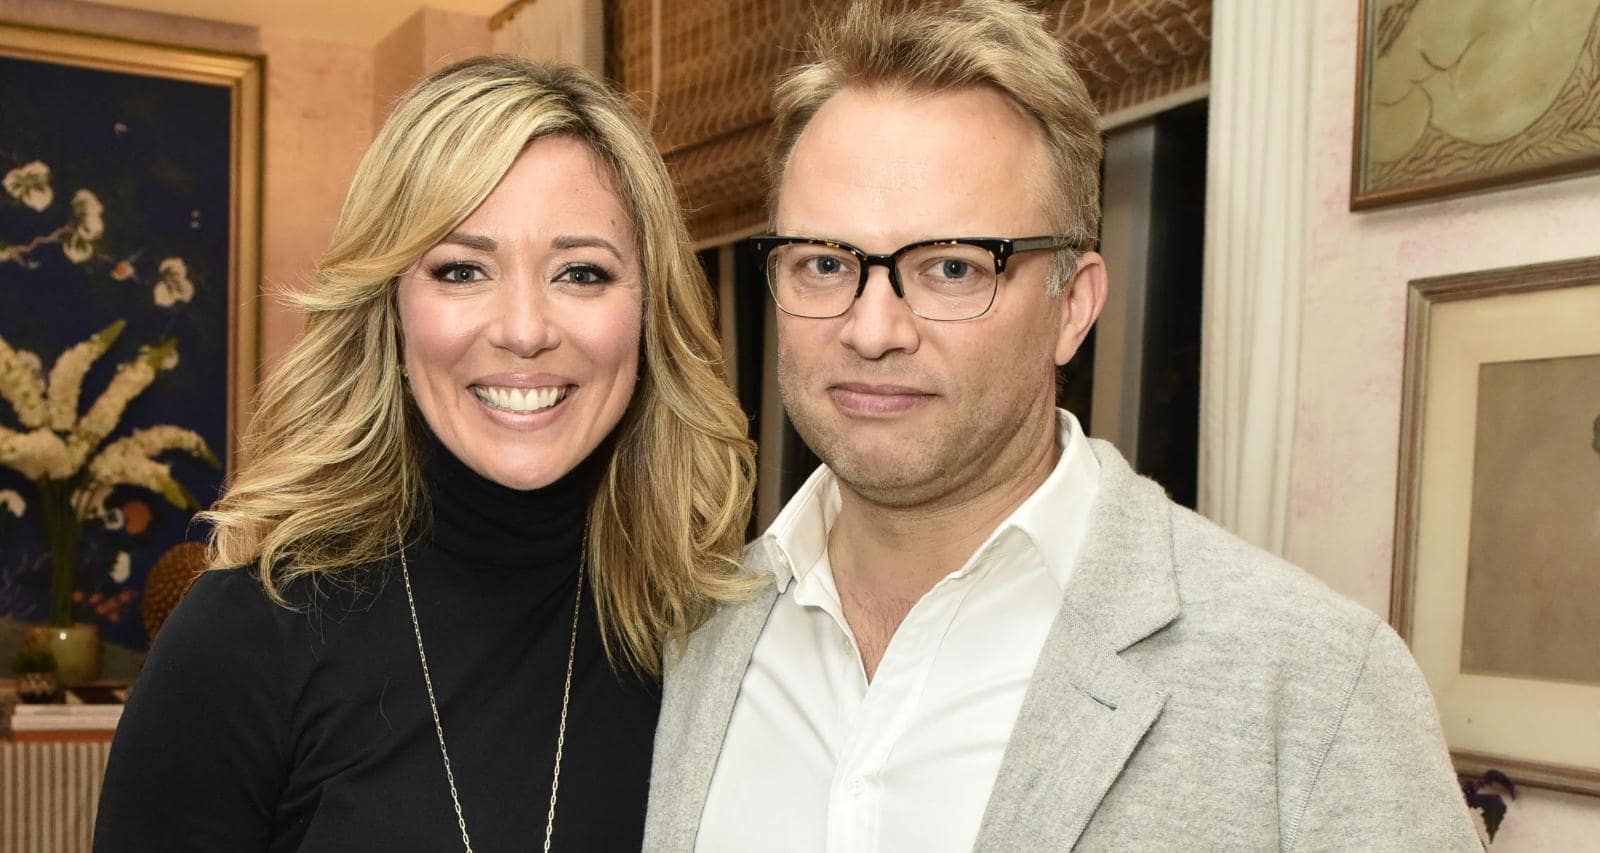 James Fletcher Wiki, Age, How They Met, Engagement, Wedding and Facts About CNN Anchor, Brooke Baldwin's Husband